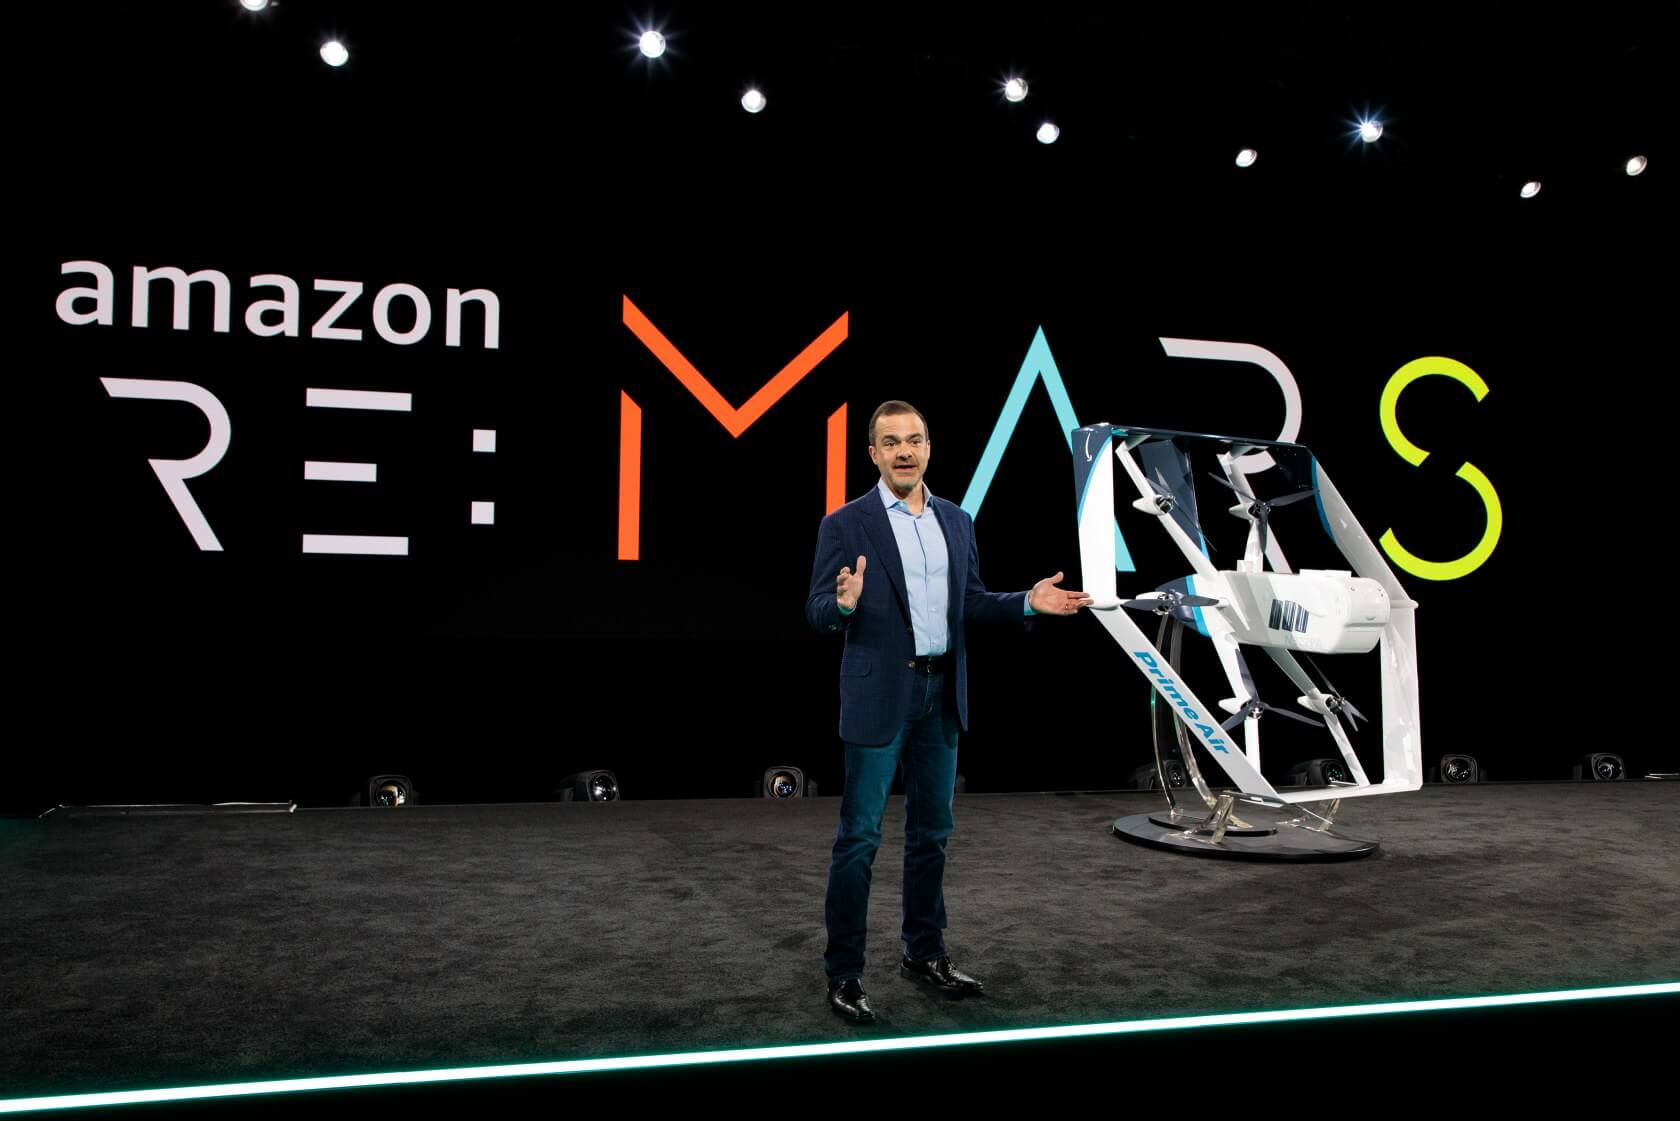 Amazon unveils its redesigned 'hybrid' delivery drone, featuring helicopter and plane flight modes